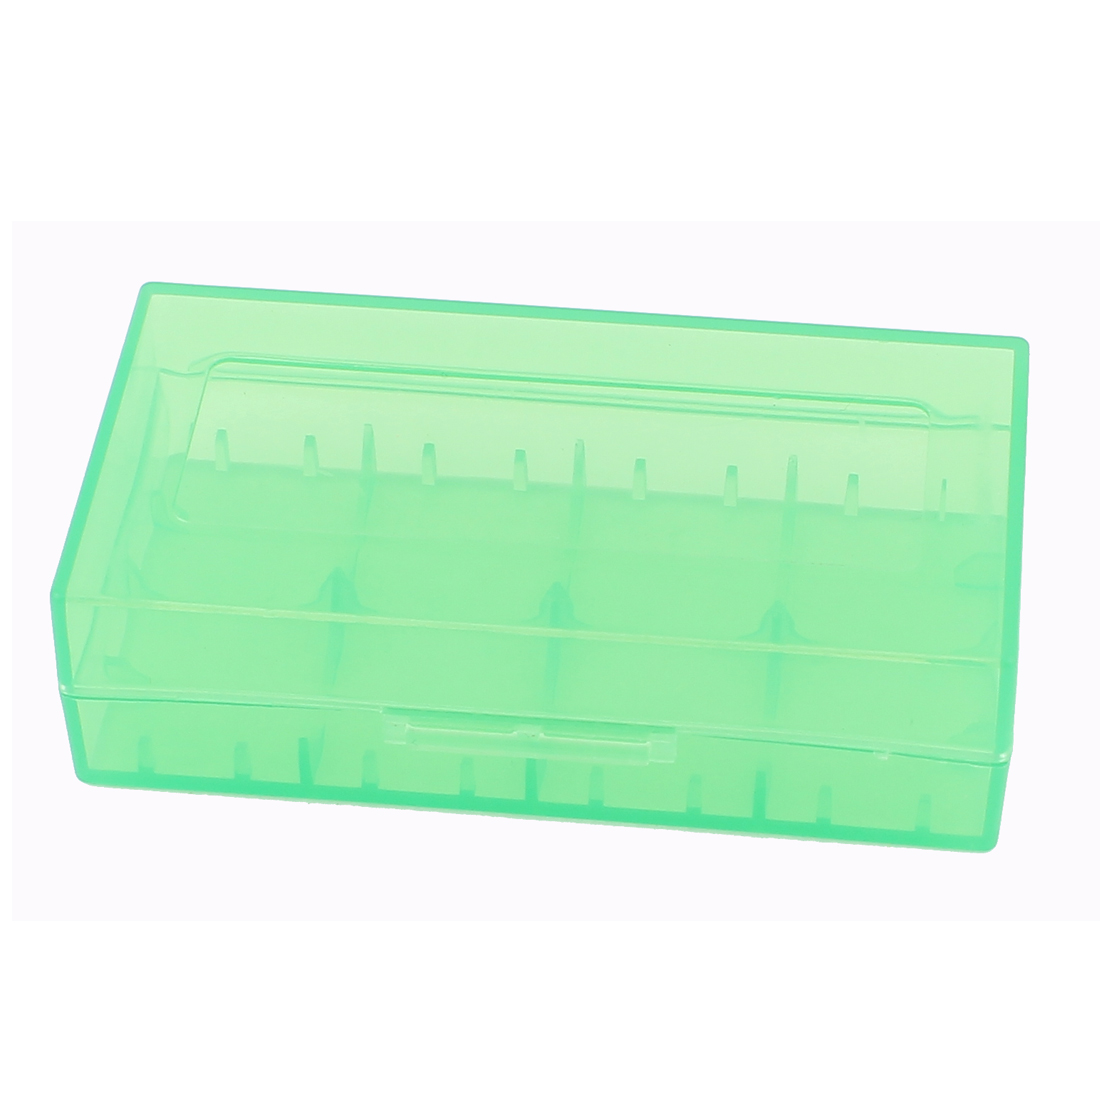 Hard Plastic Case Holder Storage Box Green for 18650 16430 CR123A Battery